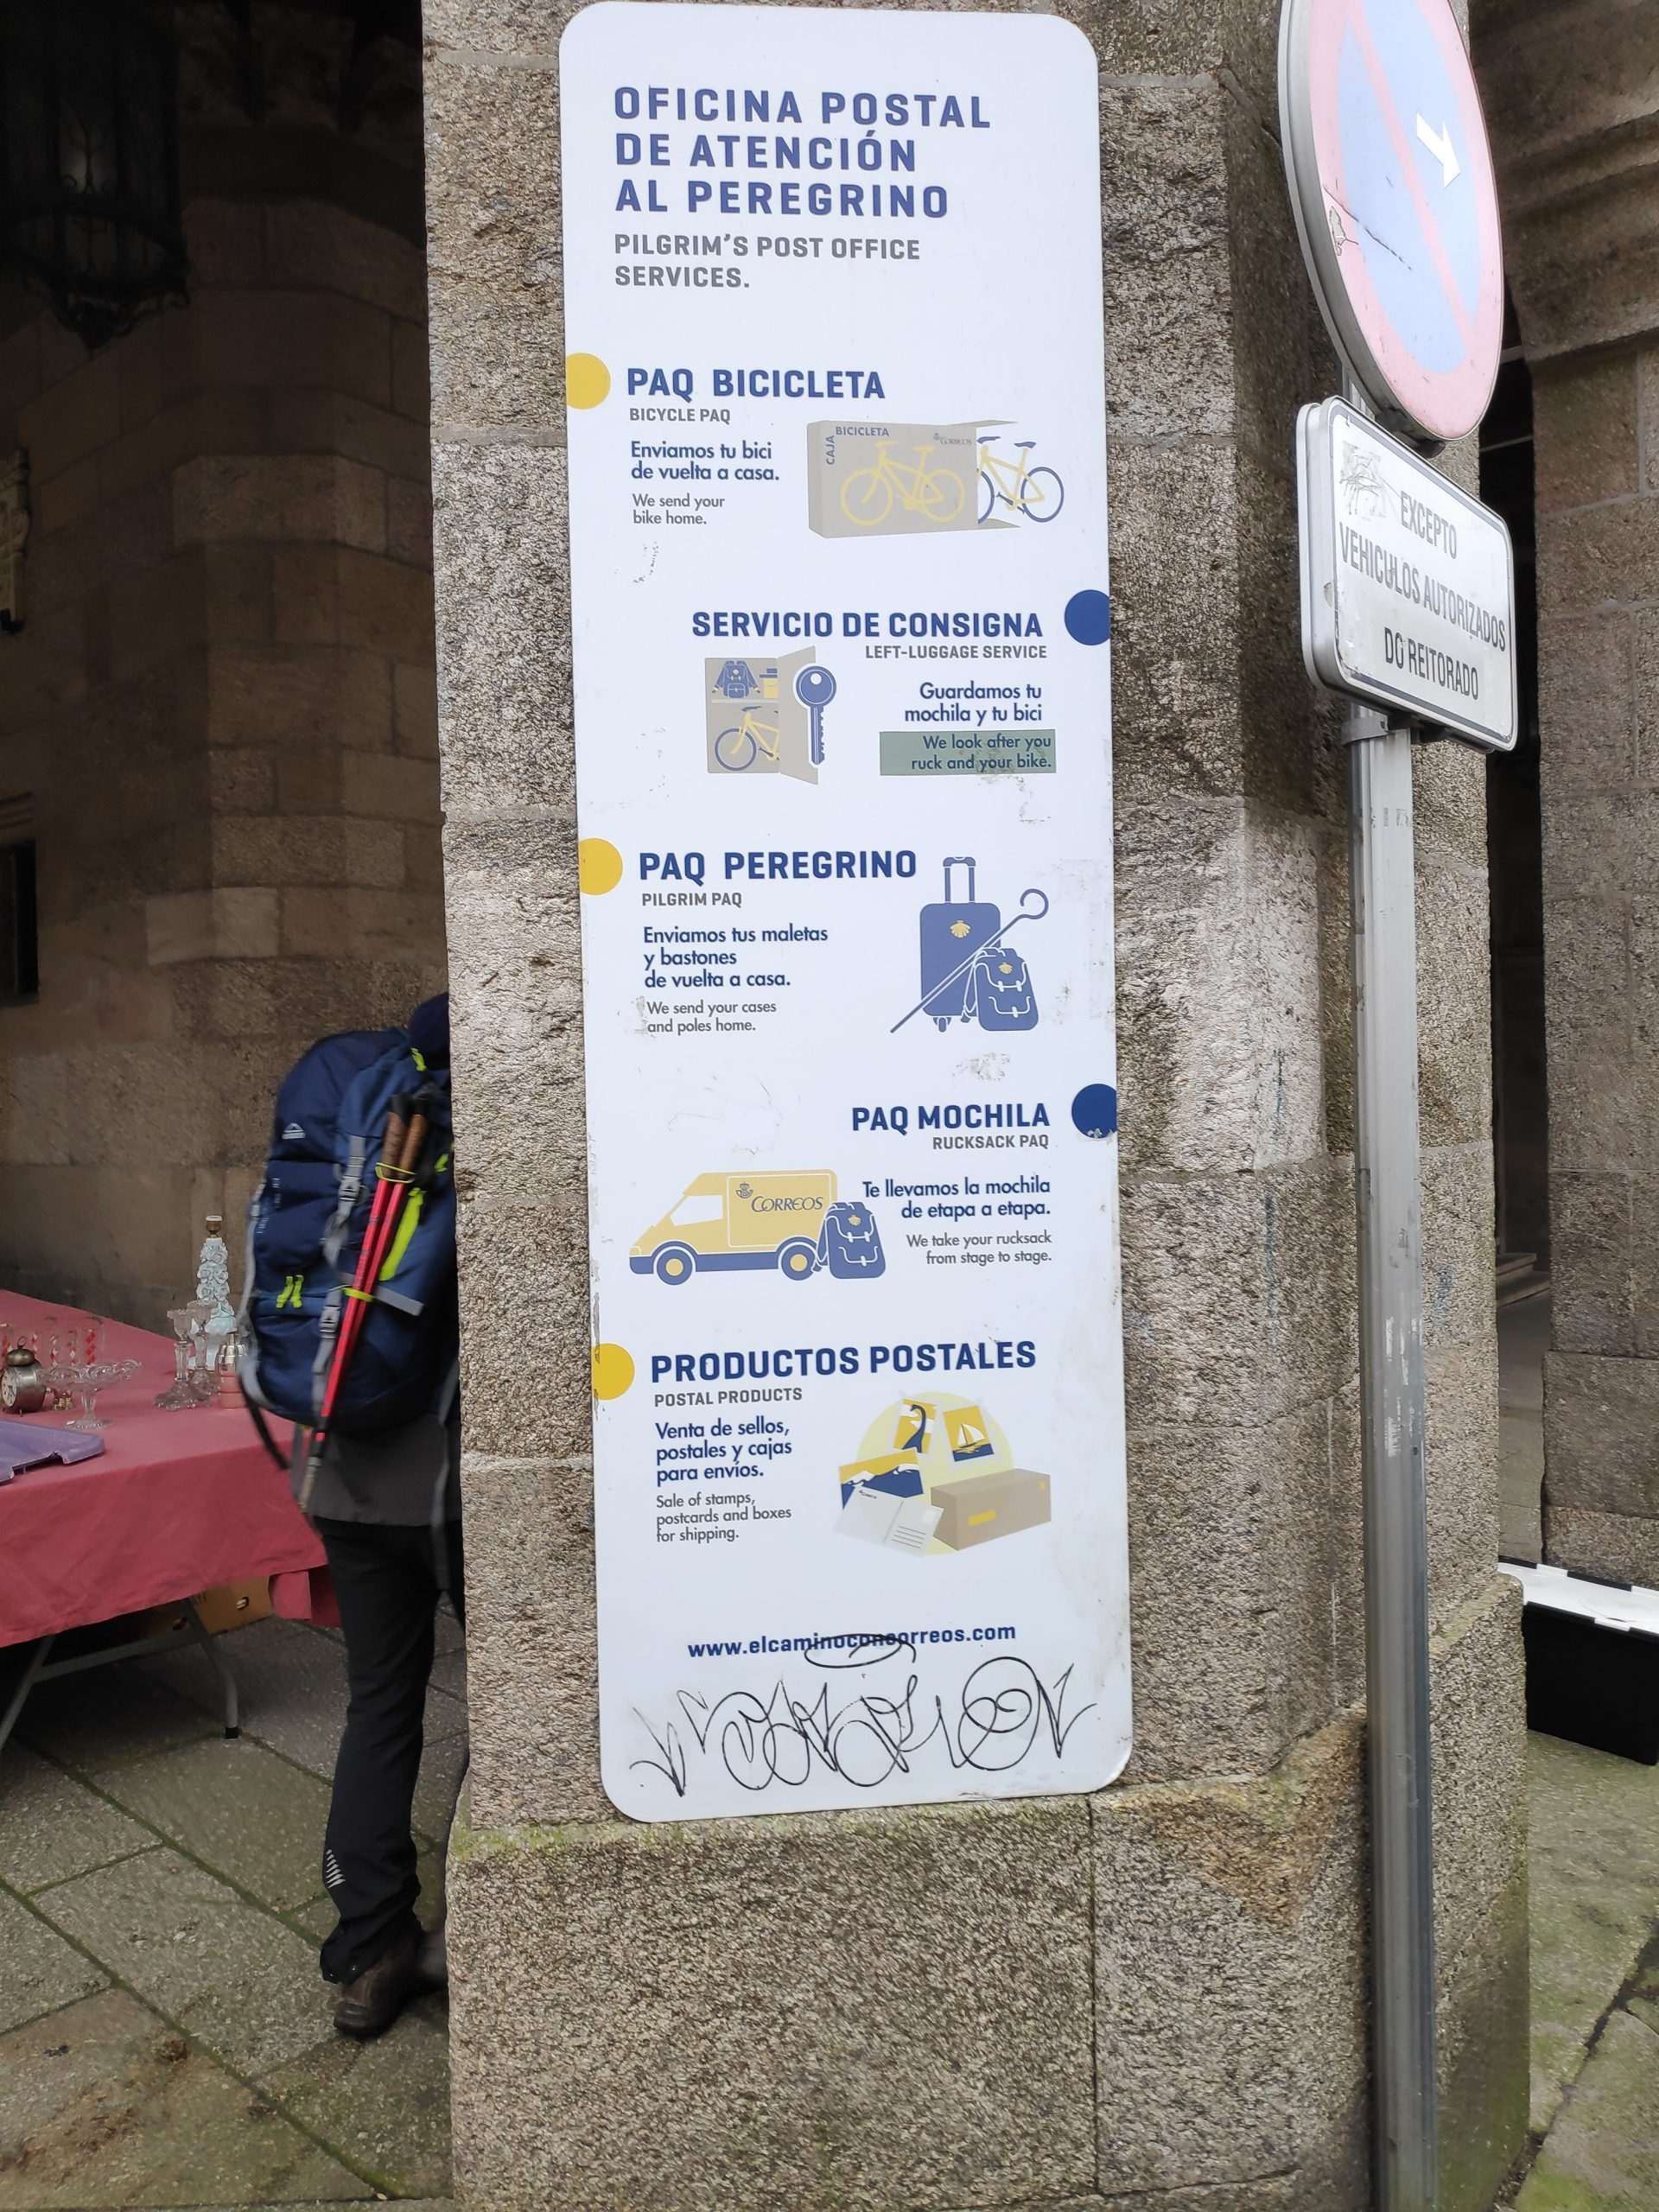 Post for pilgrims. I've mentioned before, that during high season, it's possible to send your backpacks etc. to the next albergue/stop and walk without them.